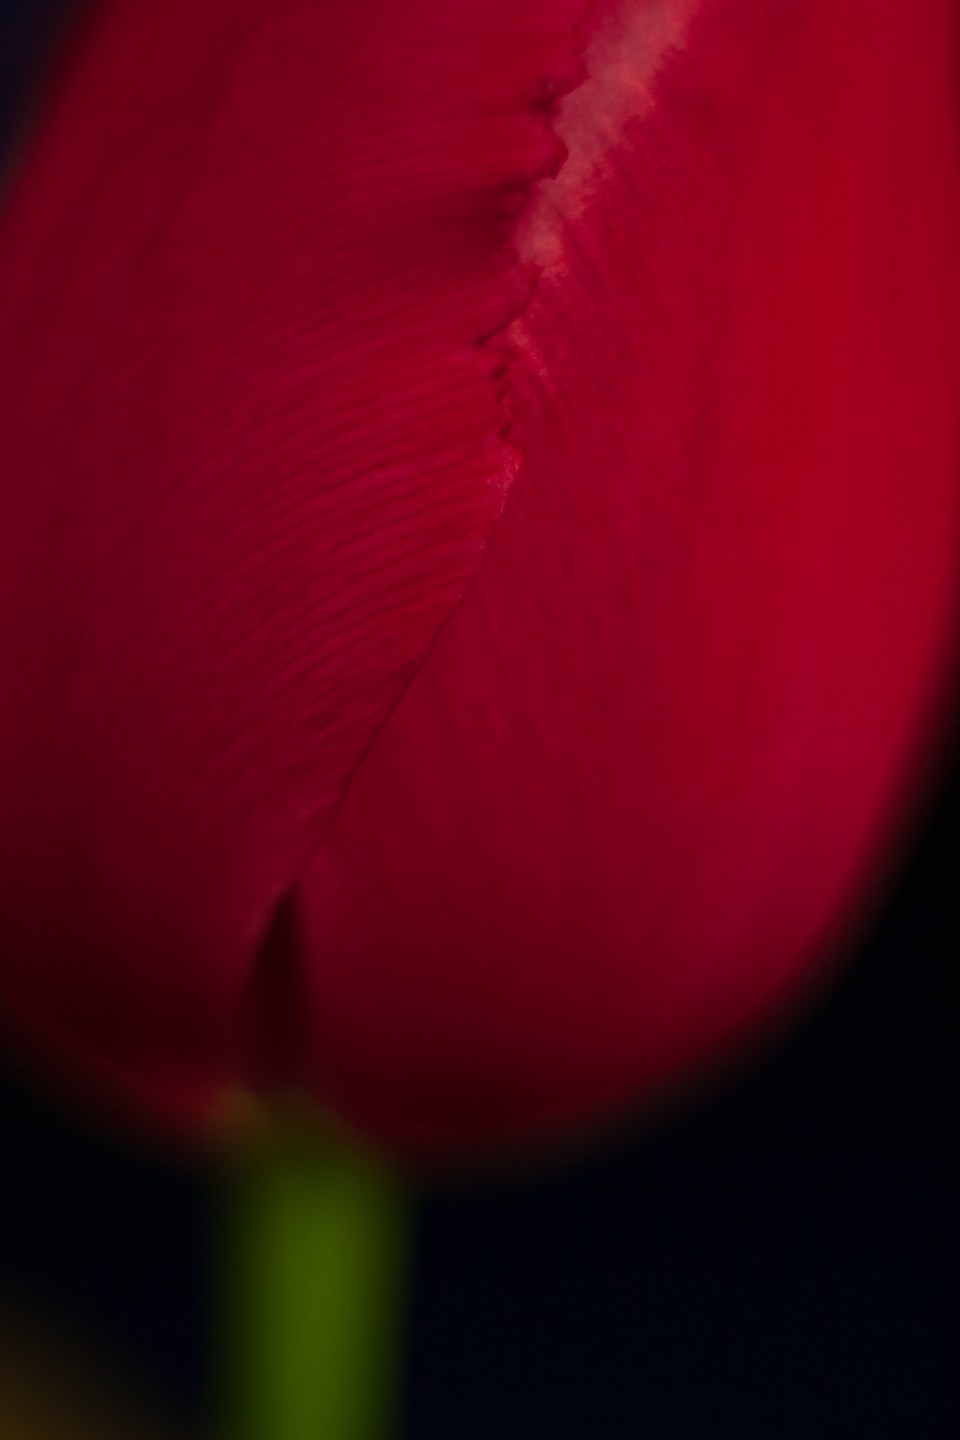 close up of a red tulip